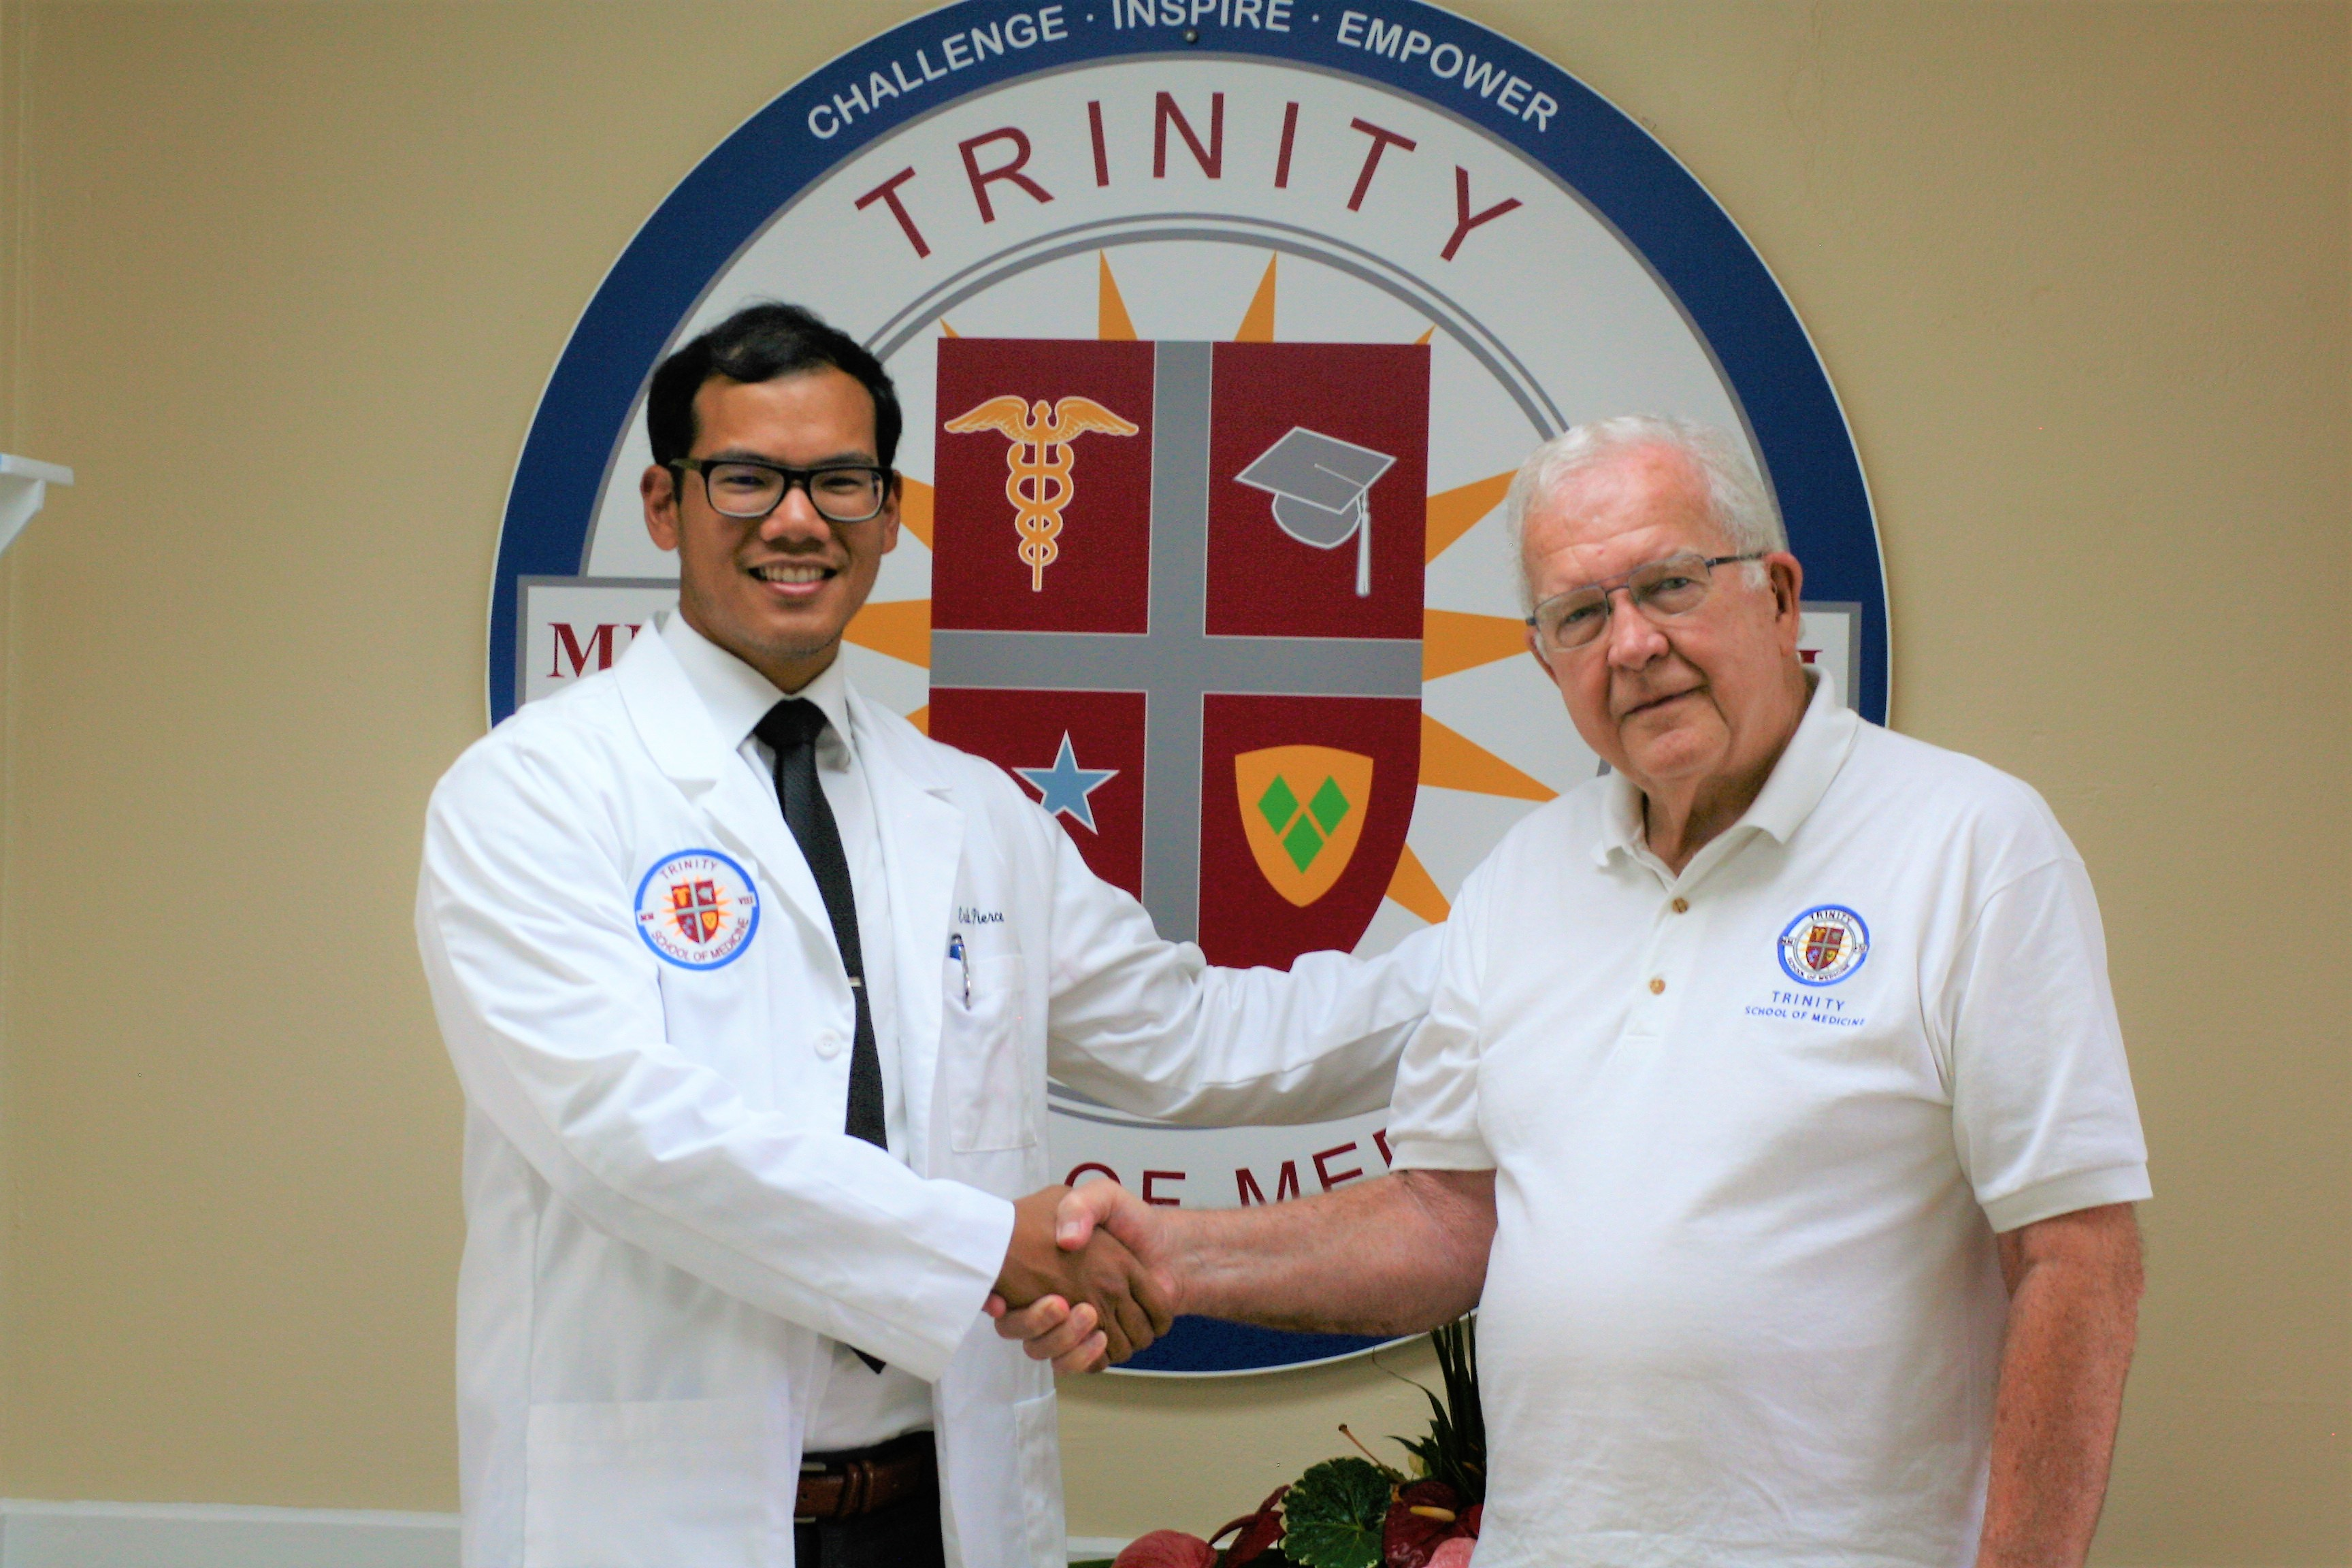 Trinity School of Medicine chancellor Doug Skelton, MD with scholarship recipient Eric Pierce